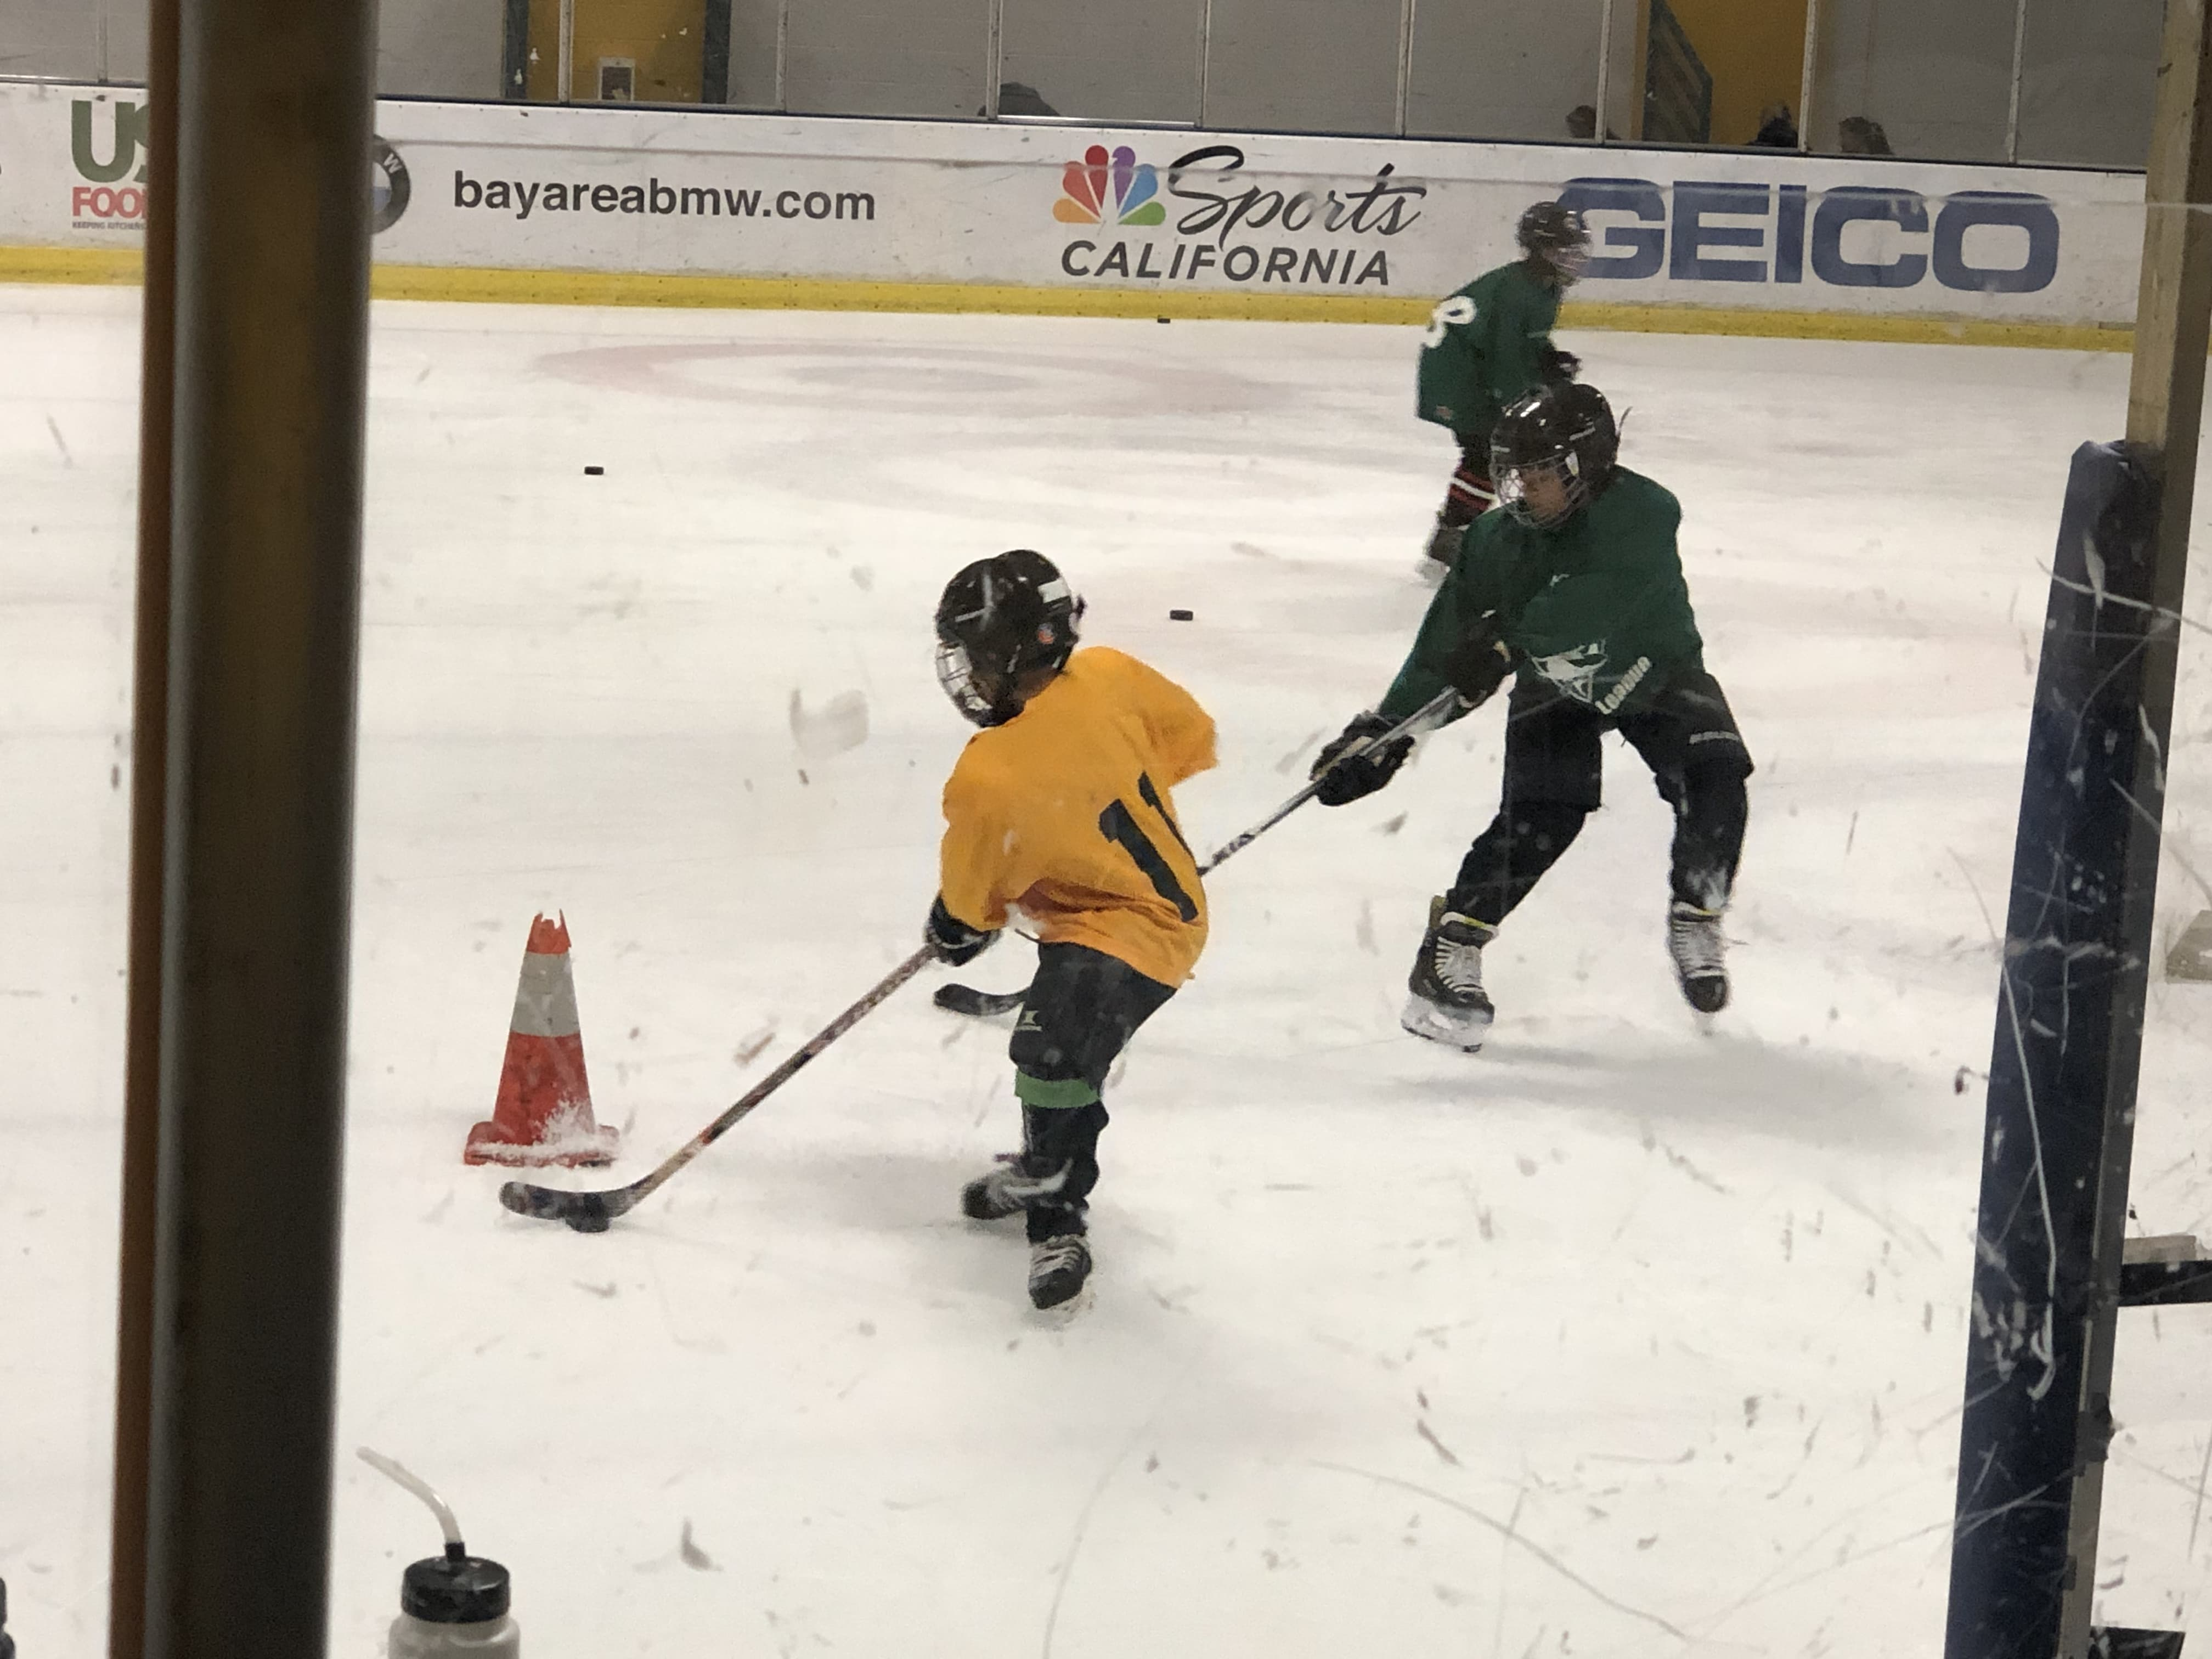 Kids are practicing in the IN HOUSE HOCKEY LEAGUE